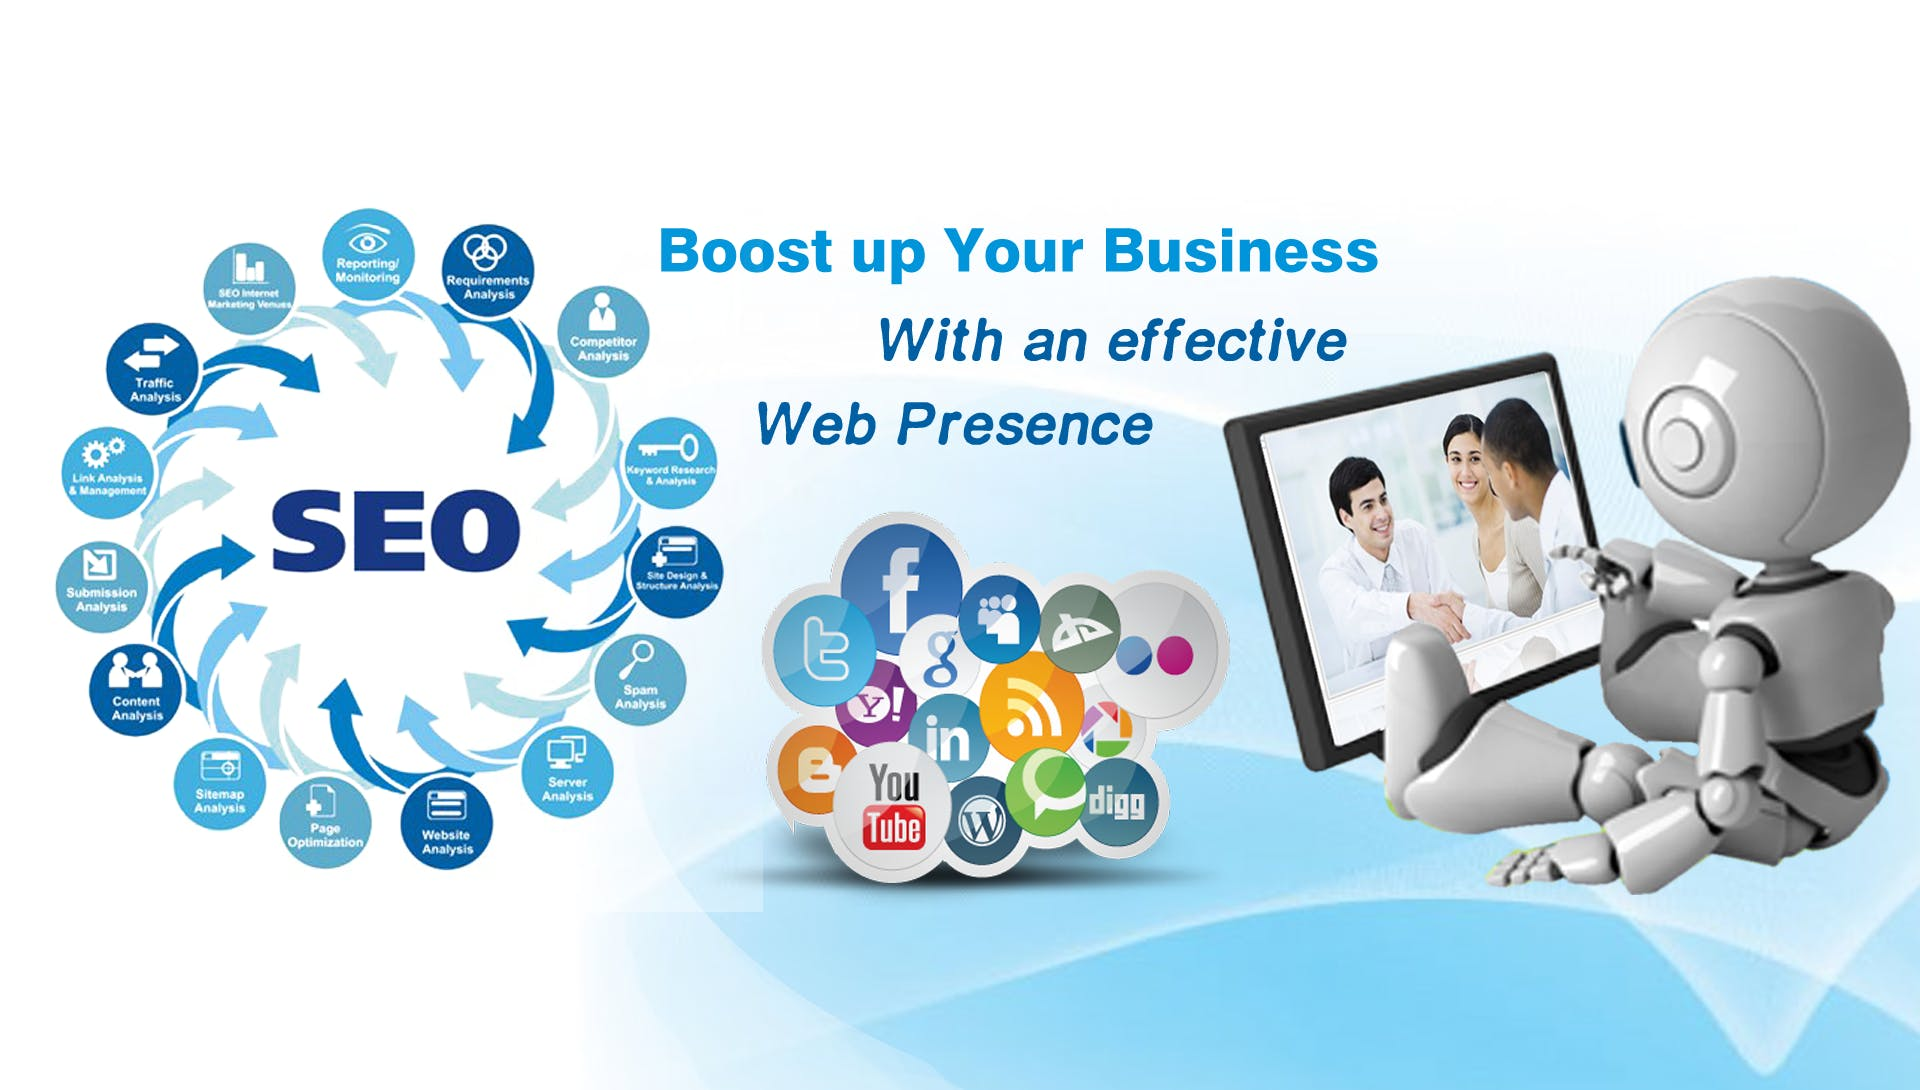 Boost Up Your Business With SEORAISERS